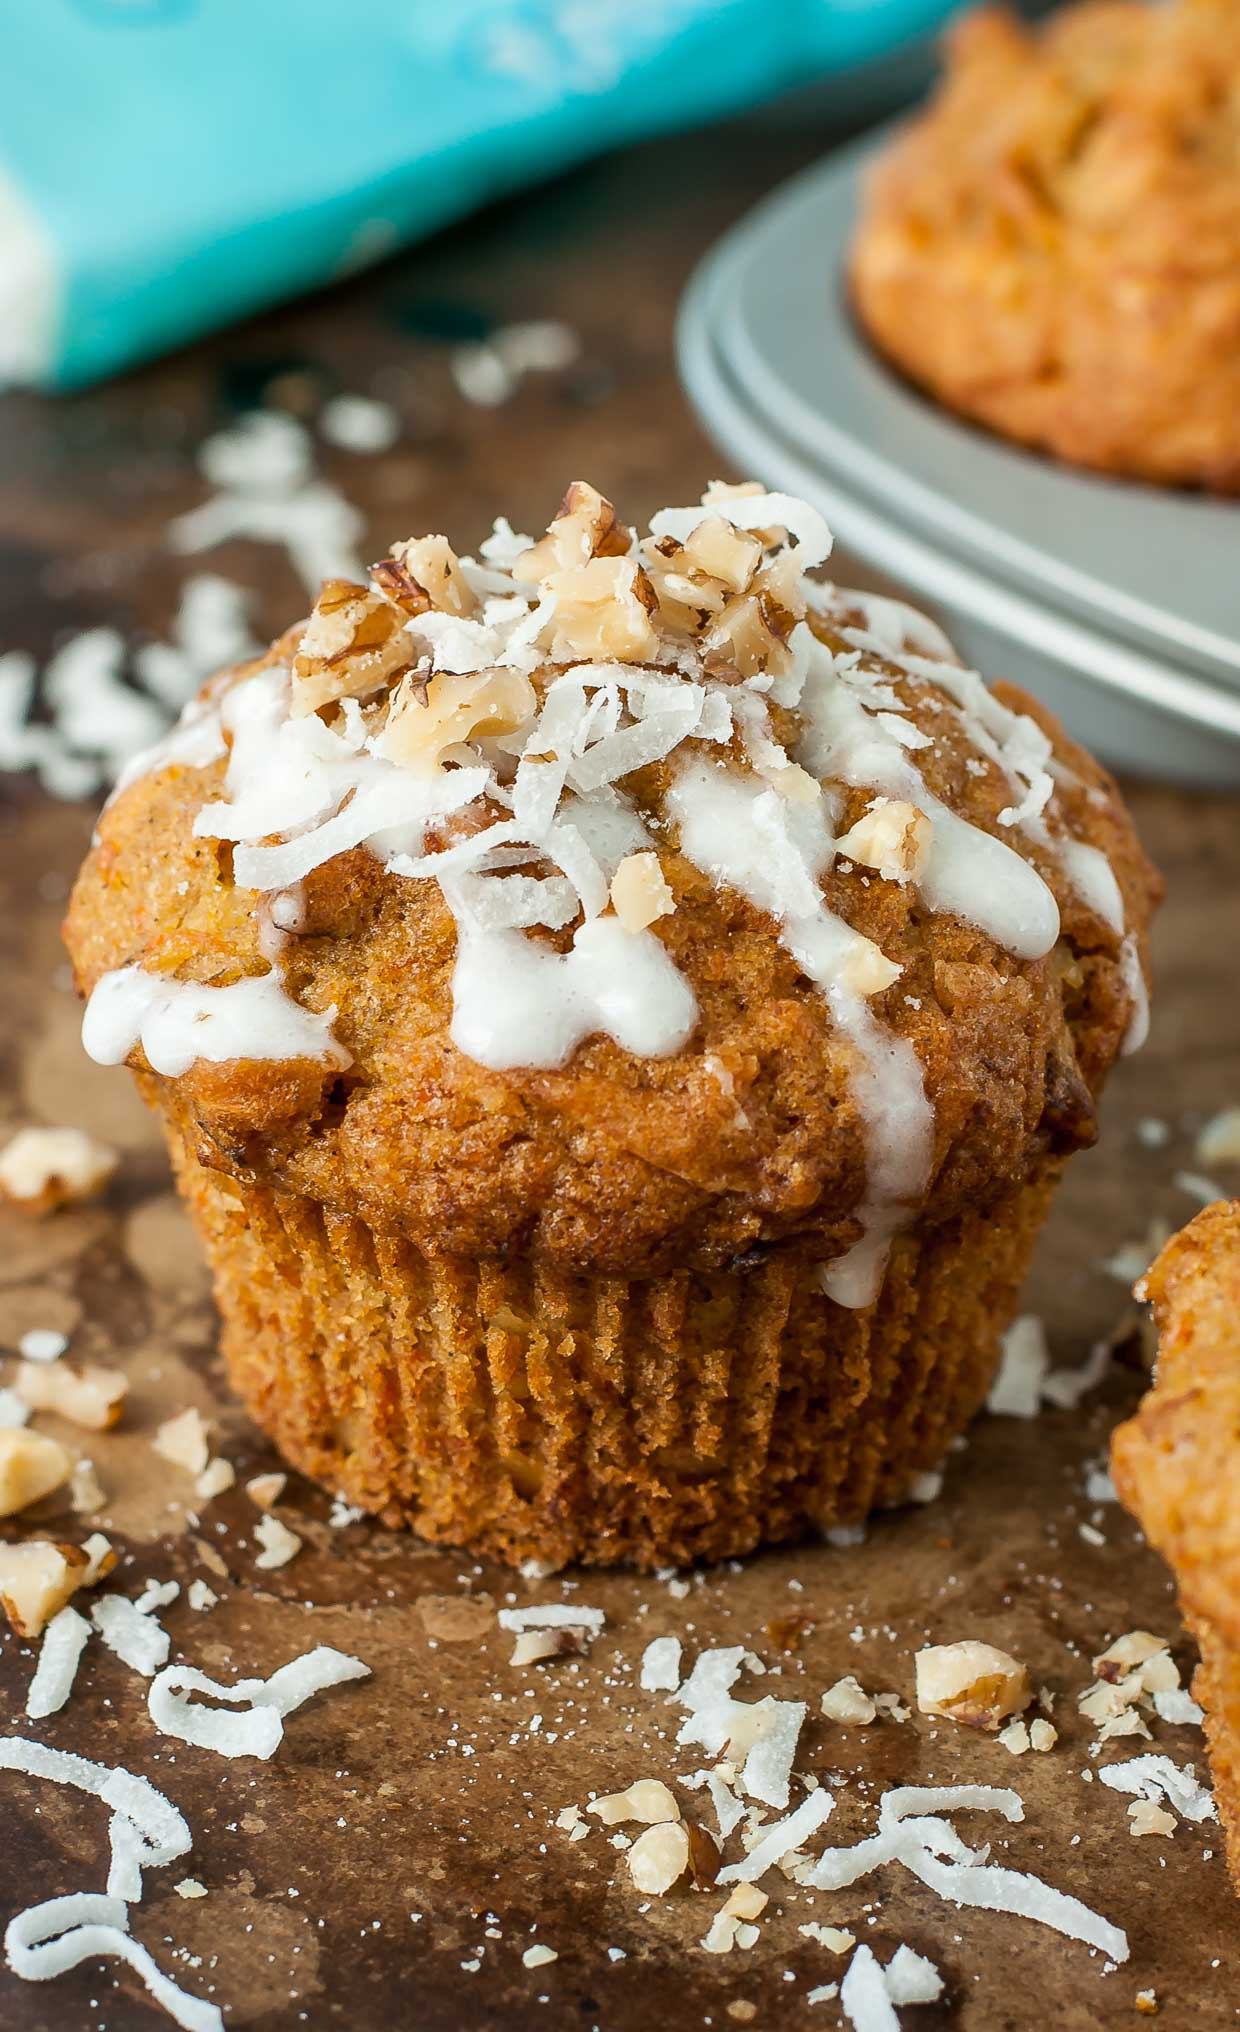 These Carrot Coconut Muffins are a tropical delight! Soft, fluffy, and so easy to whip up for all your breakfast and brunch needs.